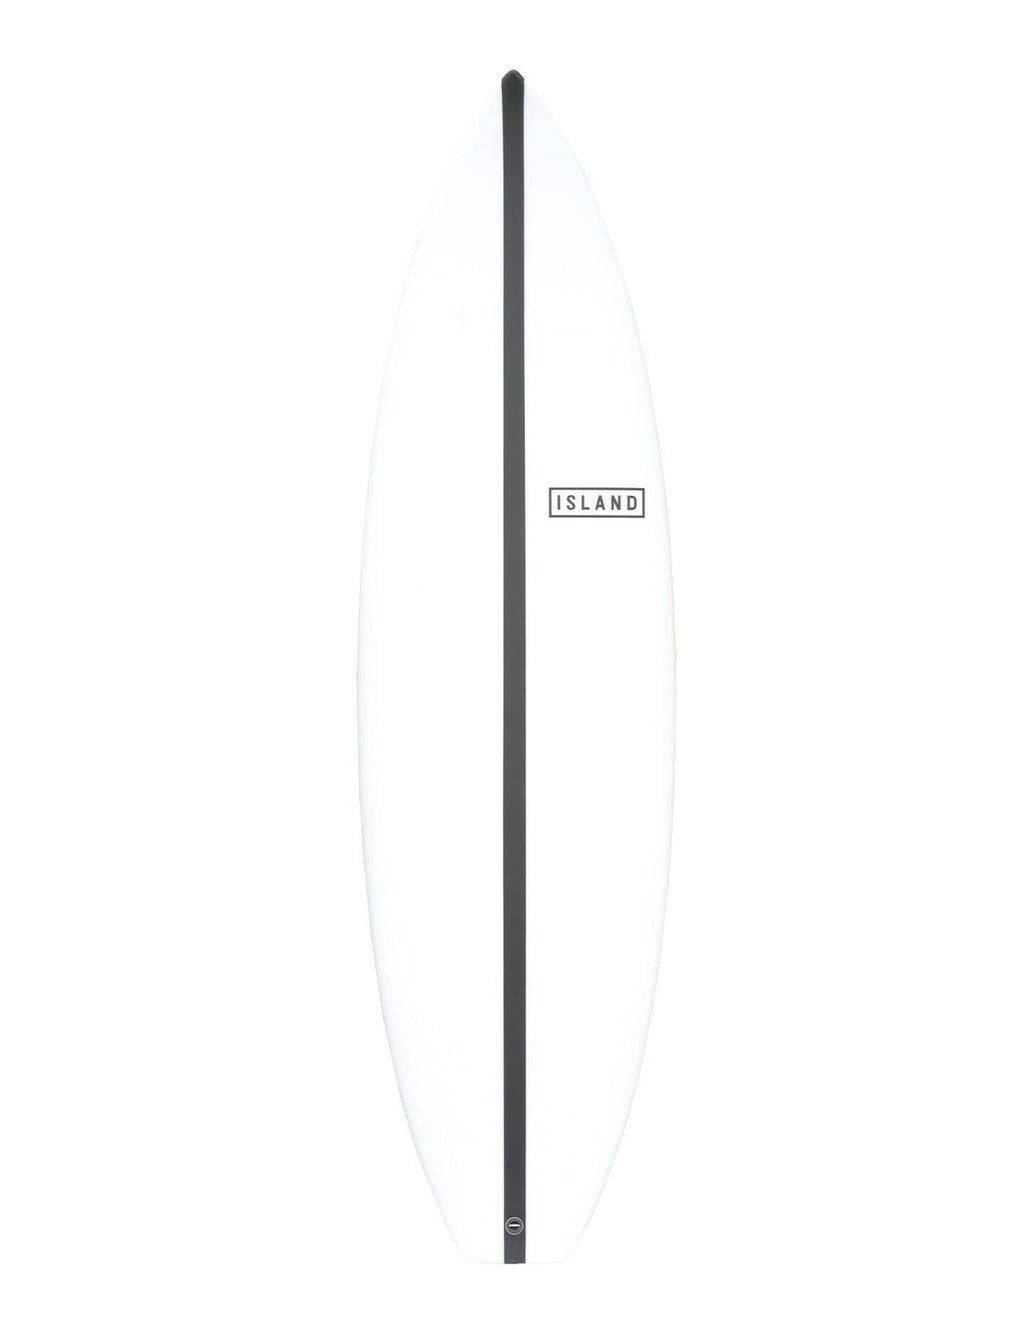 Island Flick Knife Surfboard 5'0 - 6'2 (EPS / Epoxy) surf Coastline International 5' (Junior)